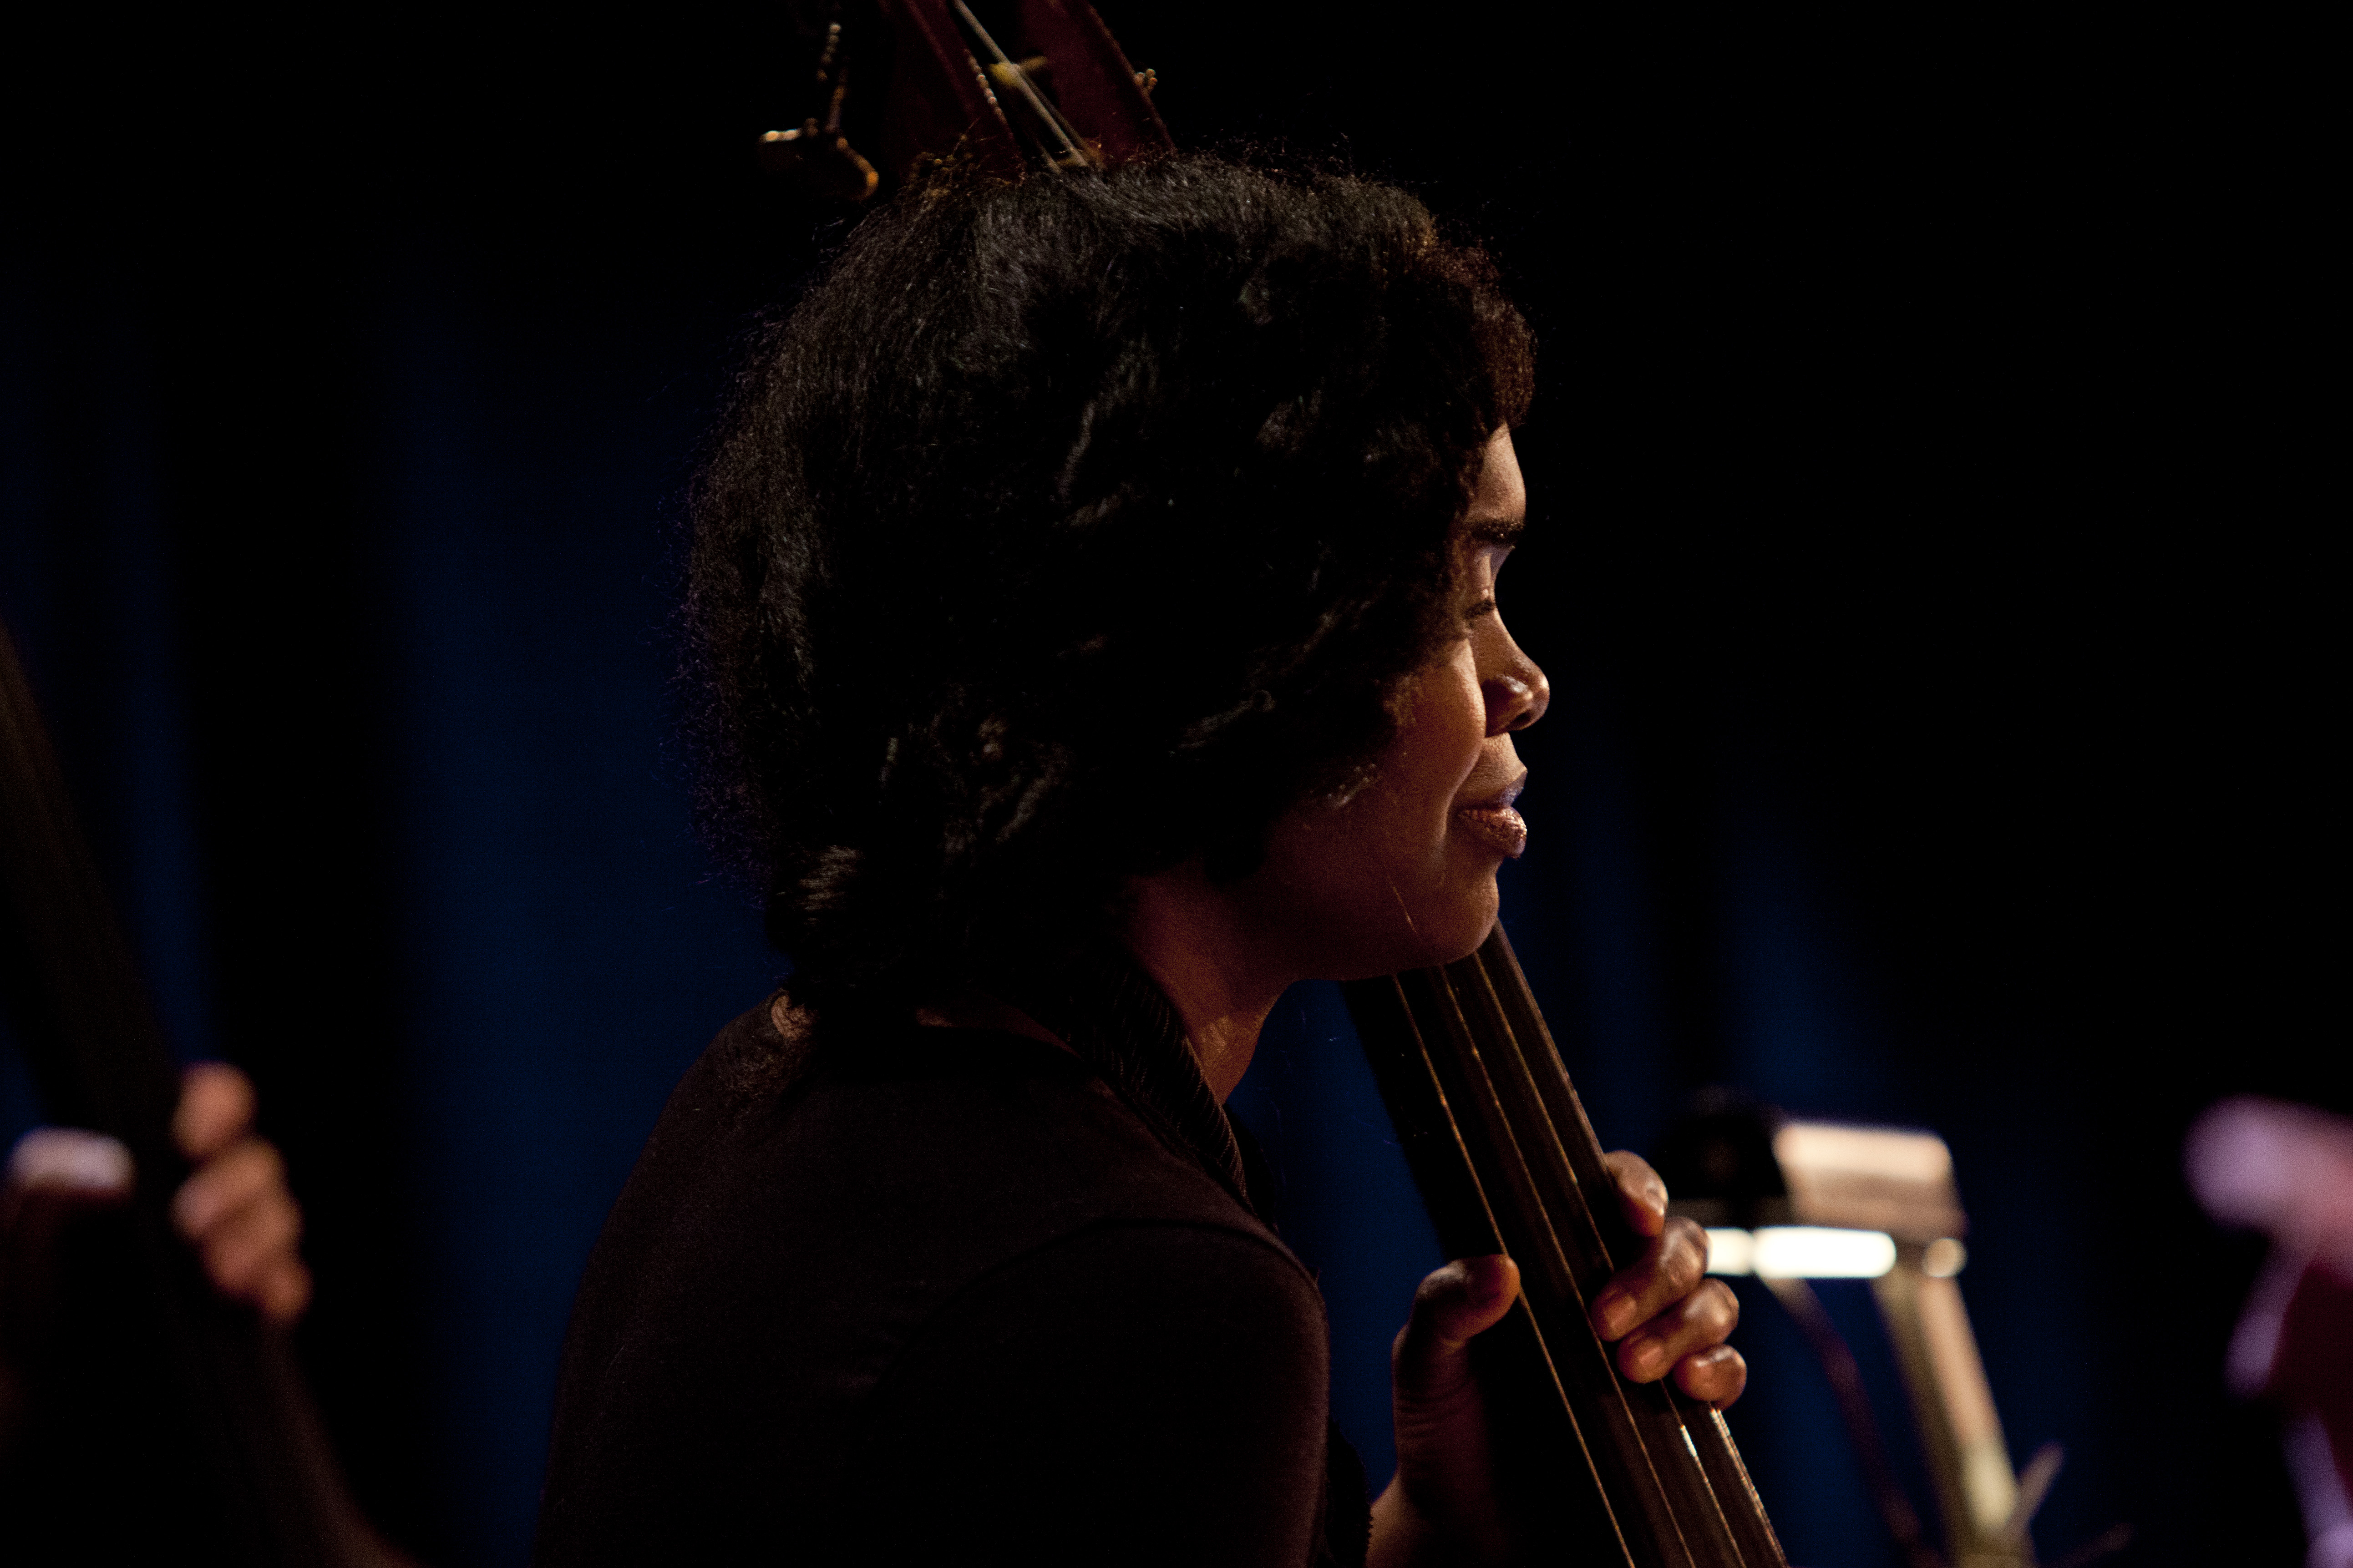 Mimi Jones was one of two bassists in Rudy Royston's 303.